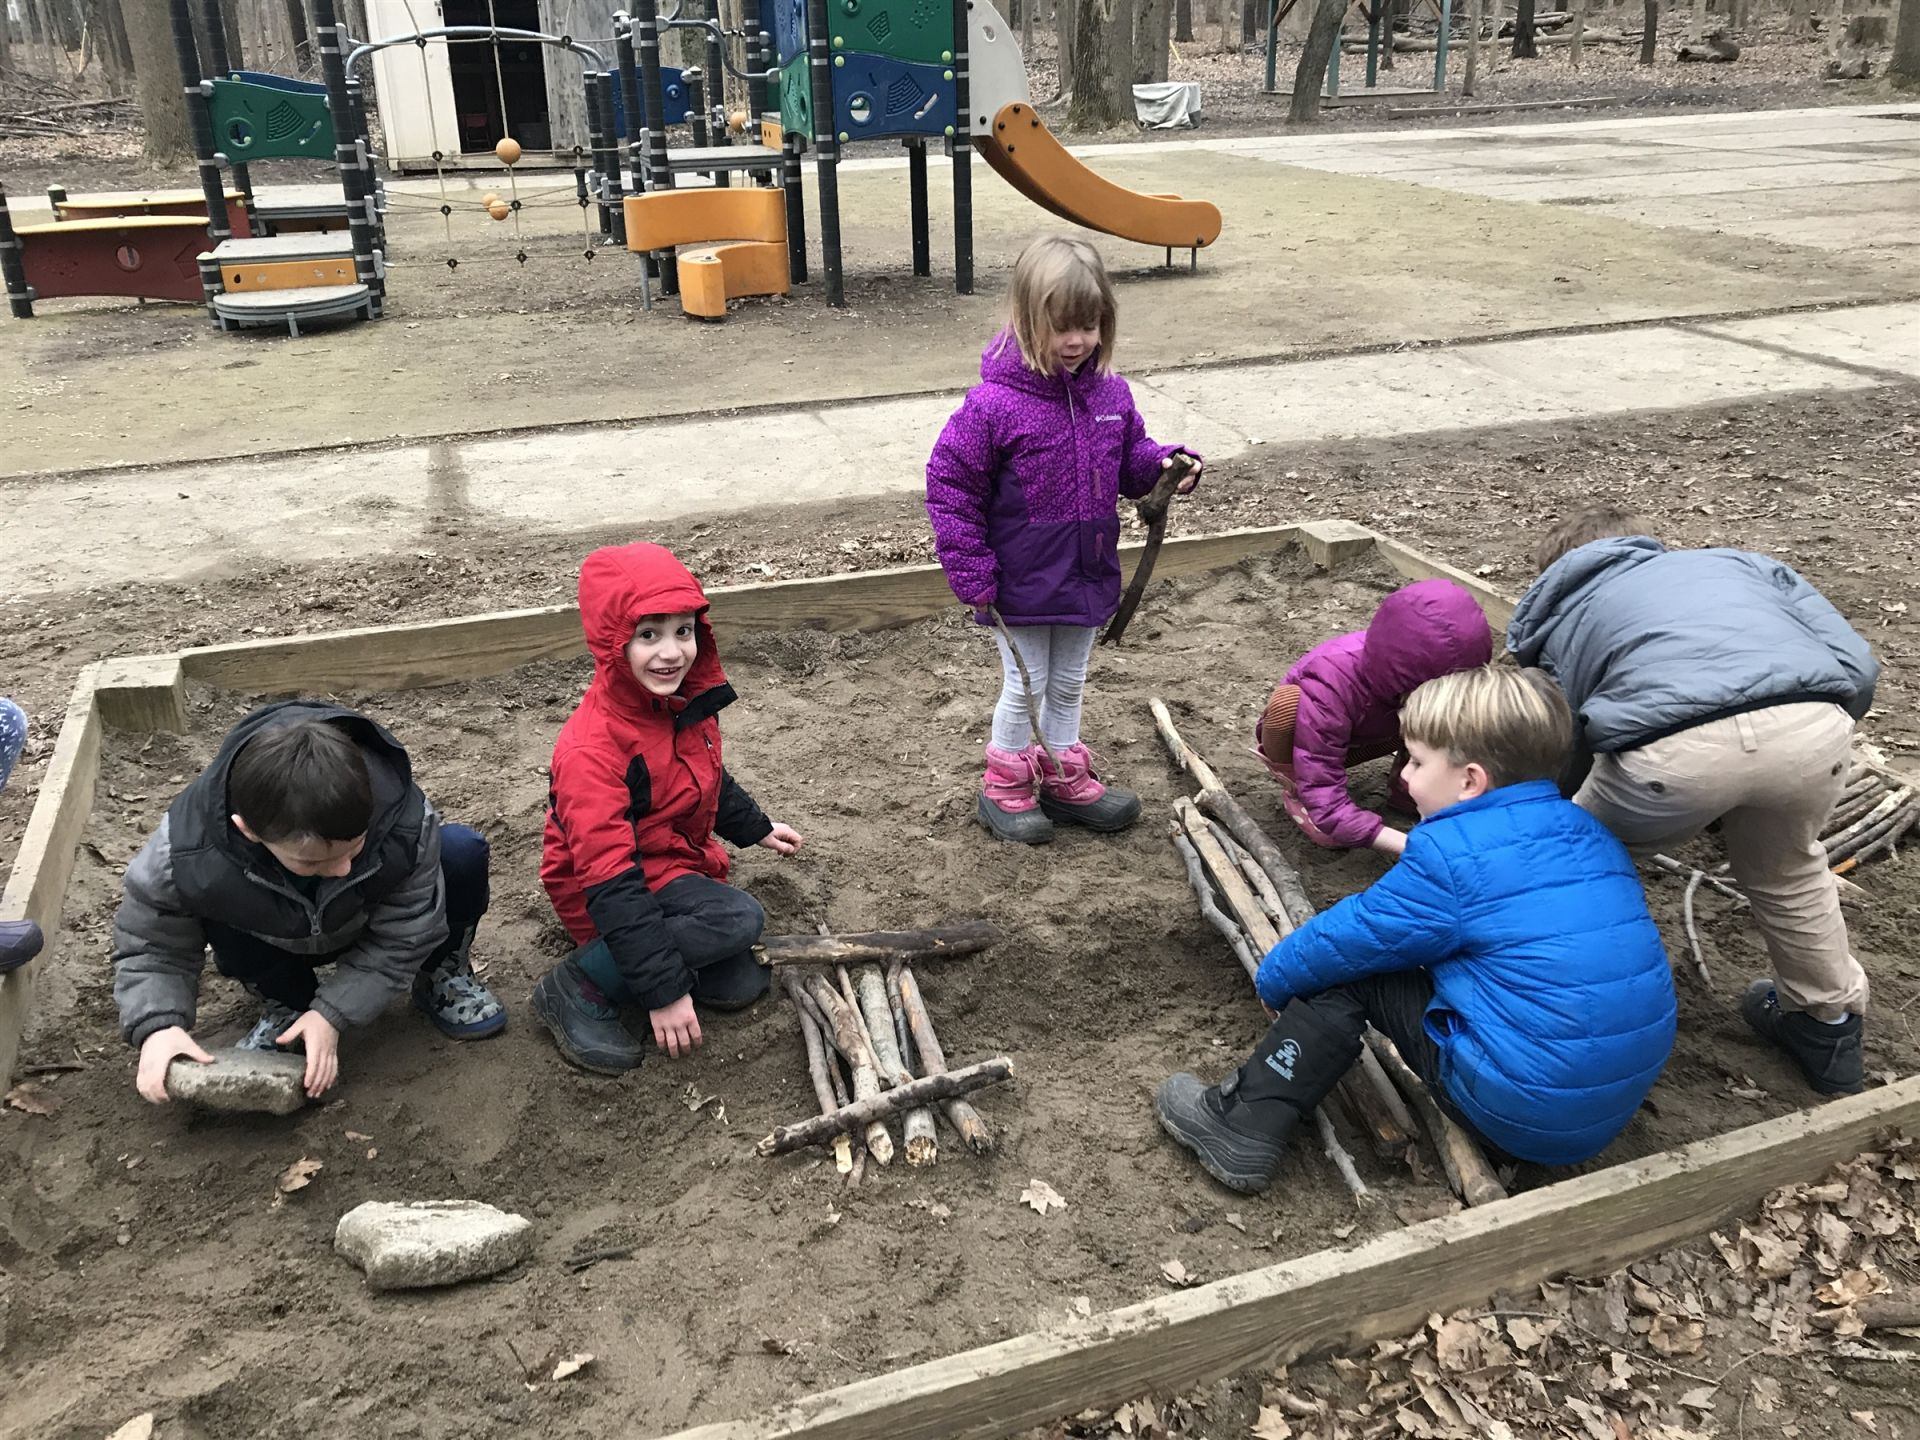 Students were given a challenge to build a bridge for the Three Billy Goats Gruff using scrounge and natural materials.